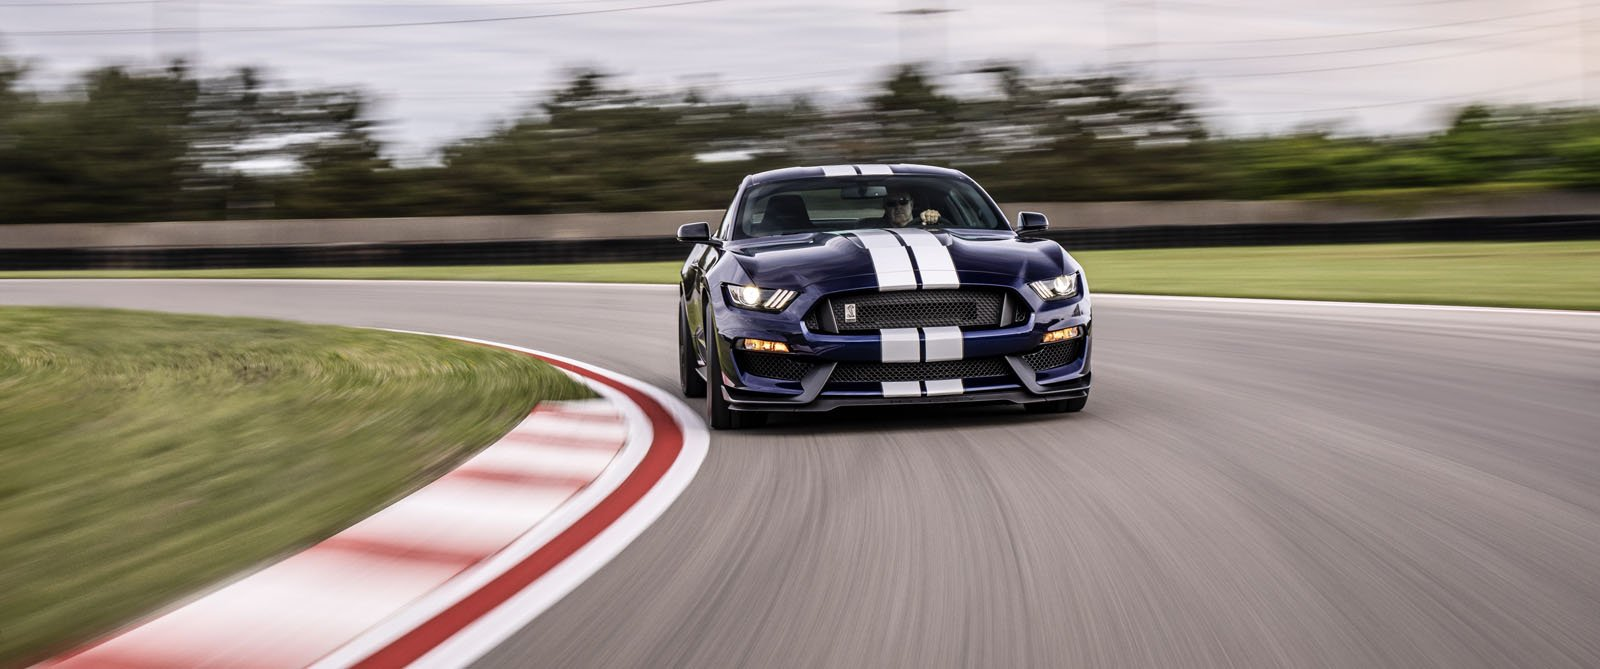 2019 Shelby GT350 Drops, Gifts You With Faster Lap Times